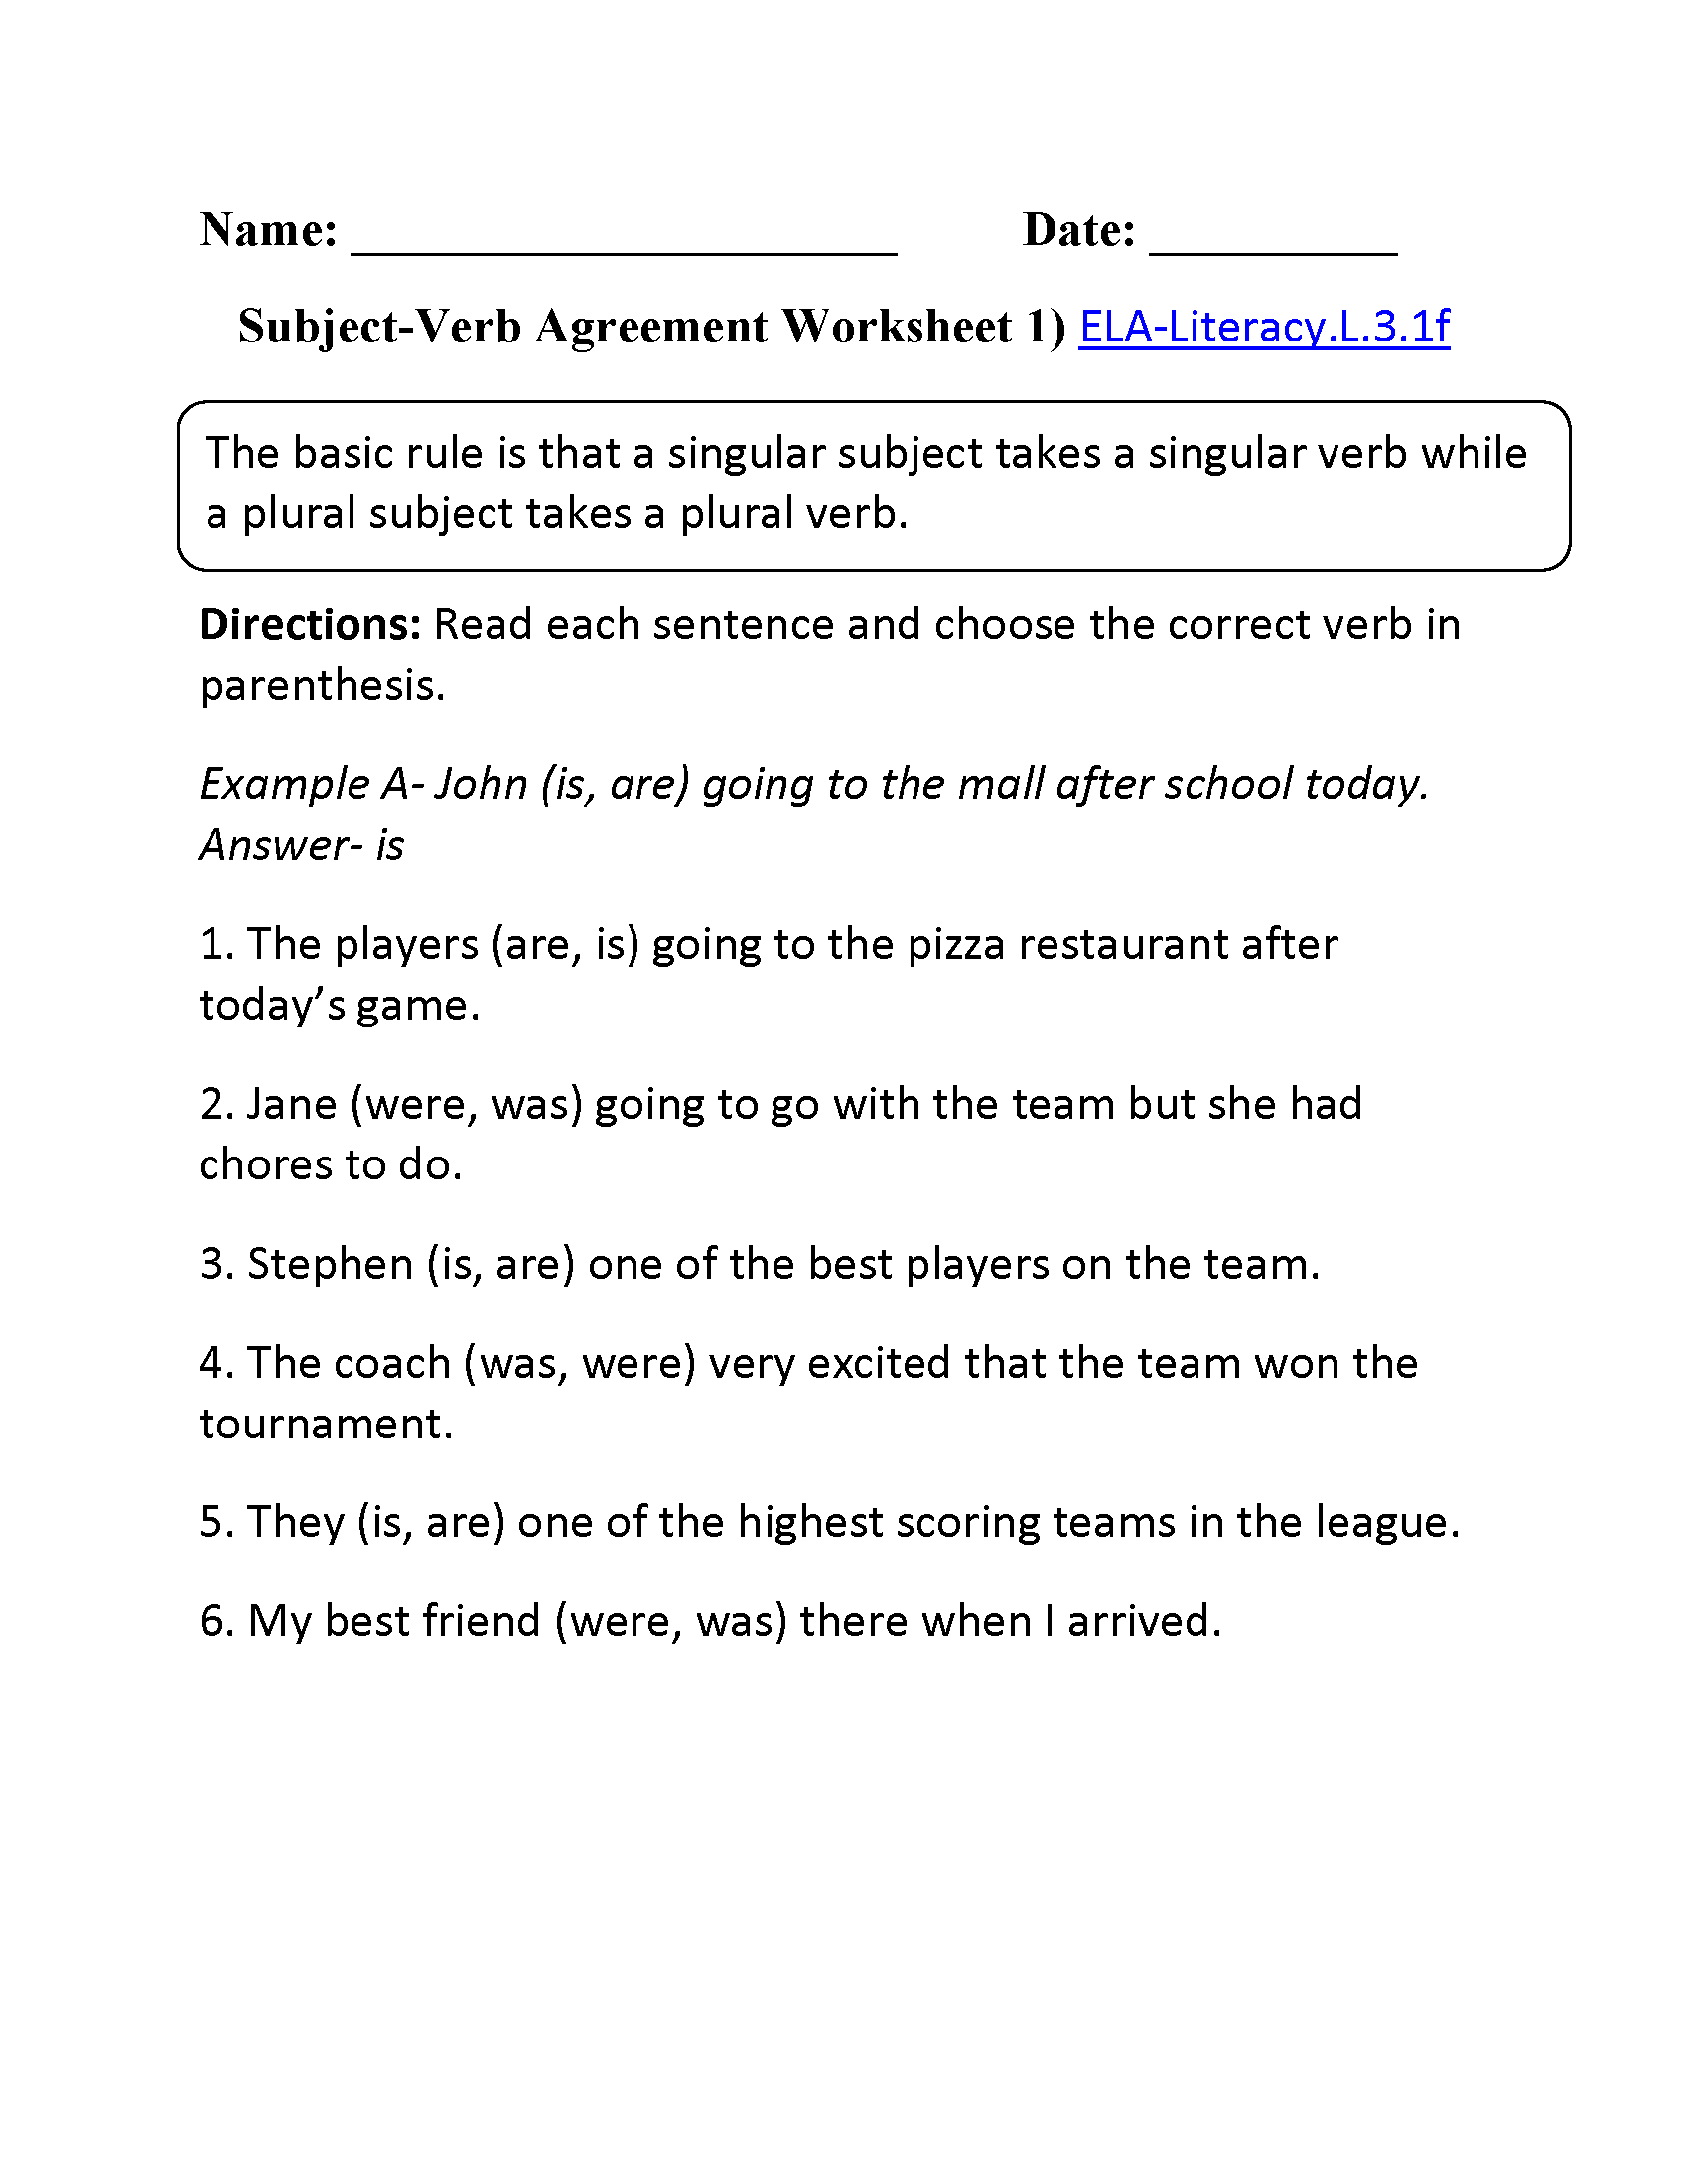 Subject Verb Agreement Worksheet 1 Ela Literacy L 3 1f